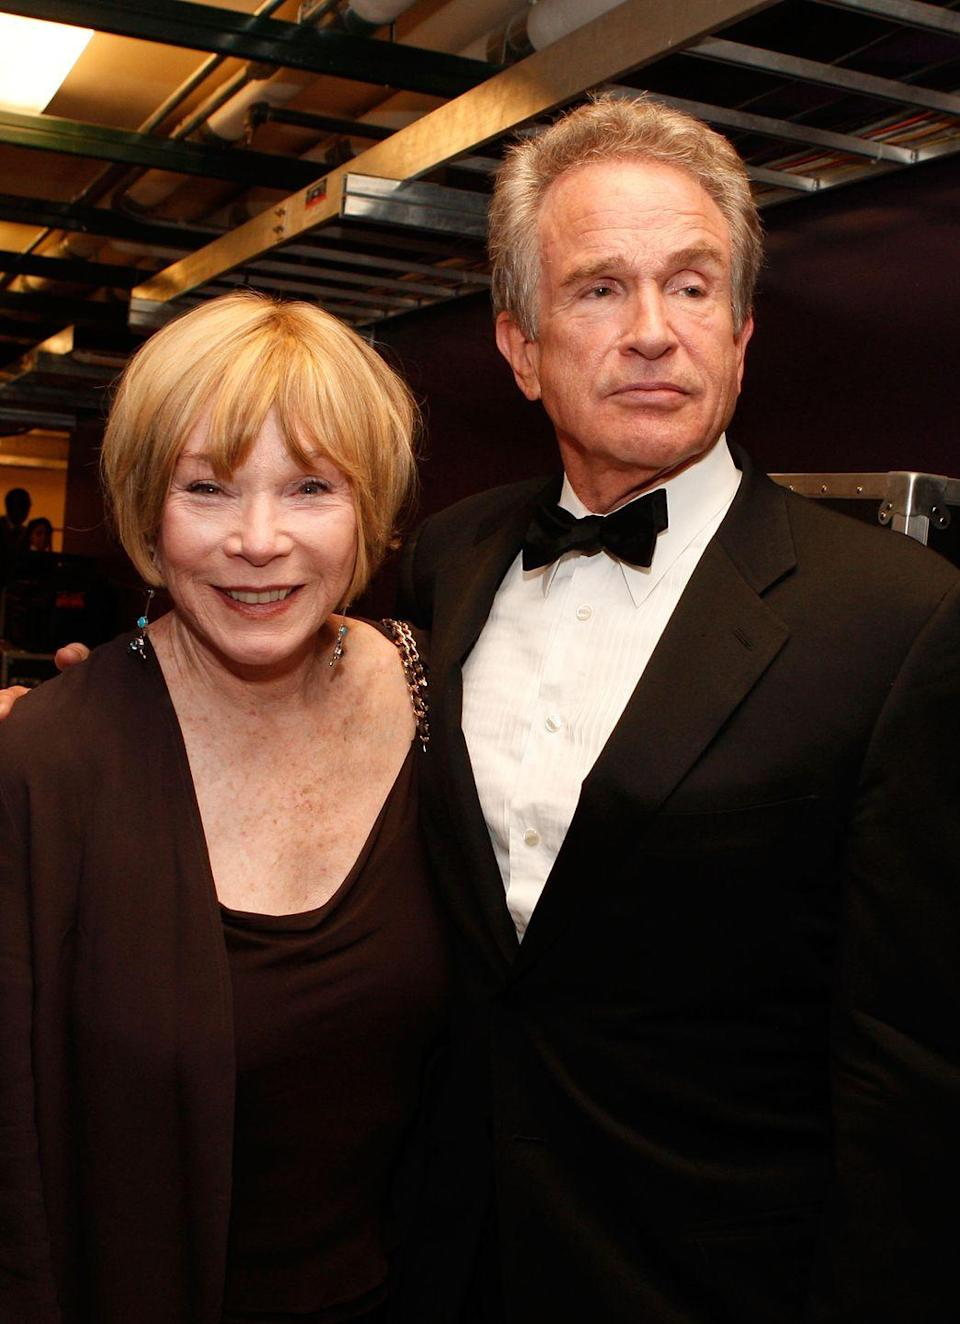 <p>We bet you didn't even know Warren Beatty and Shirley MacLaine were siblings—not many do. But after seeing them side-by-side, with their button noses and deep set eyes, it seems so obvious.</p>